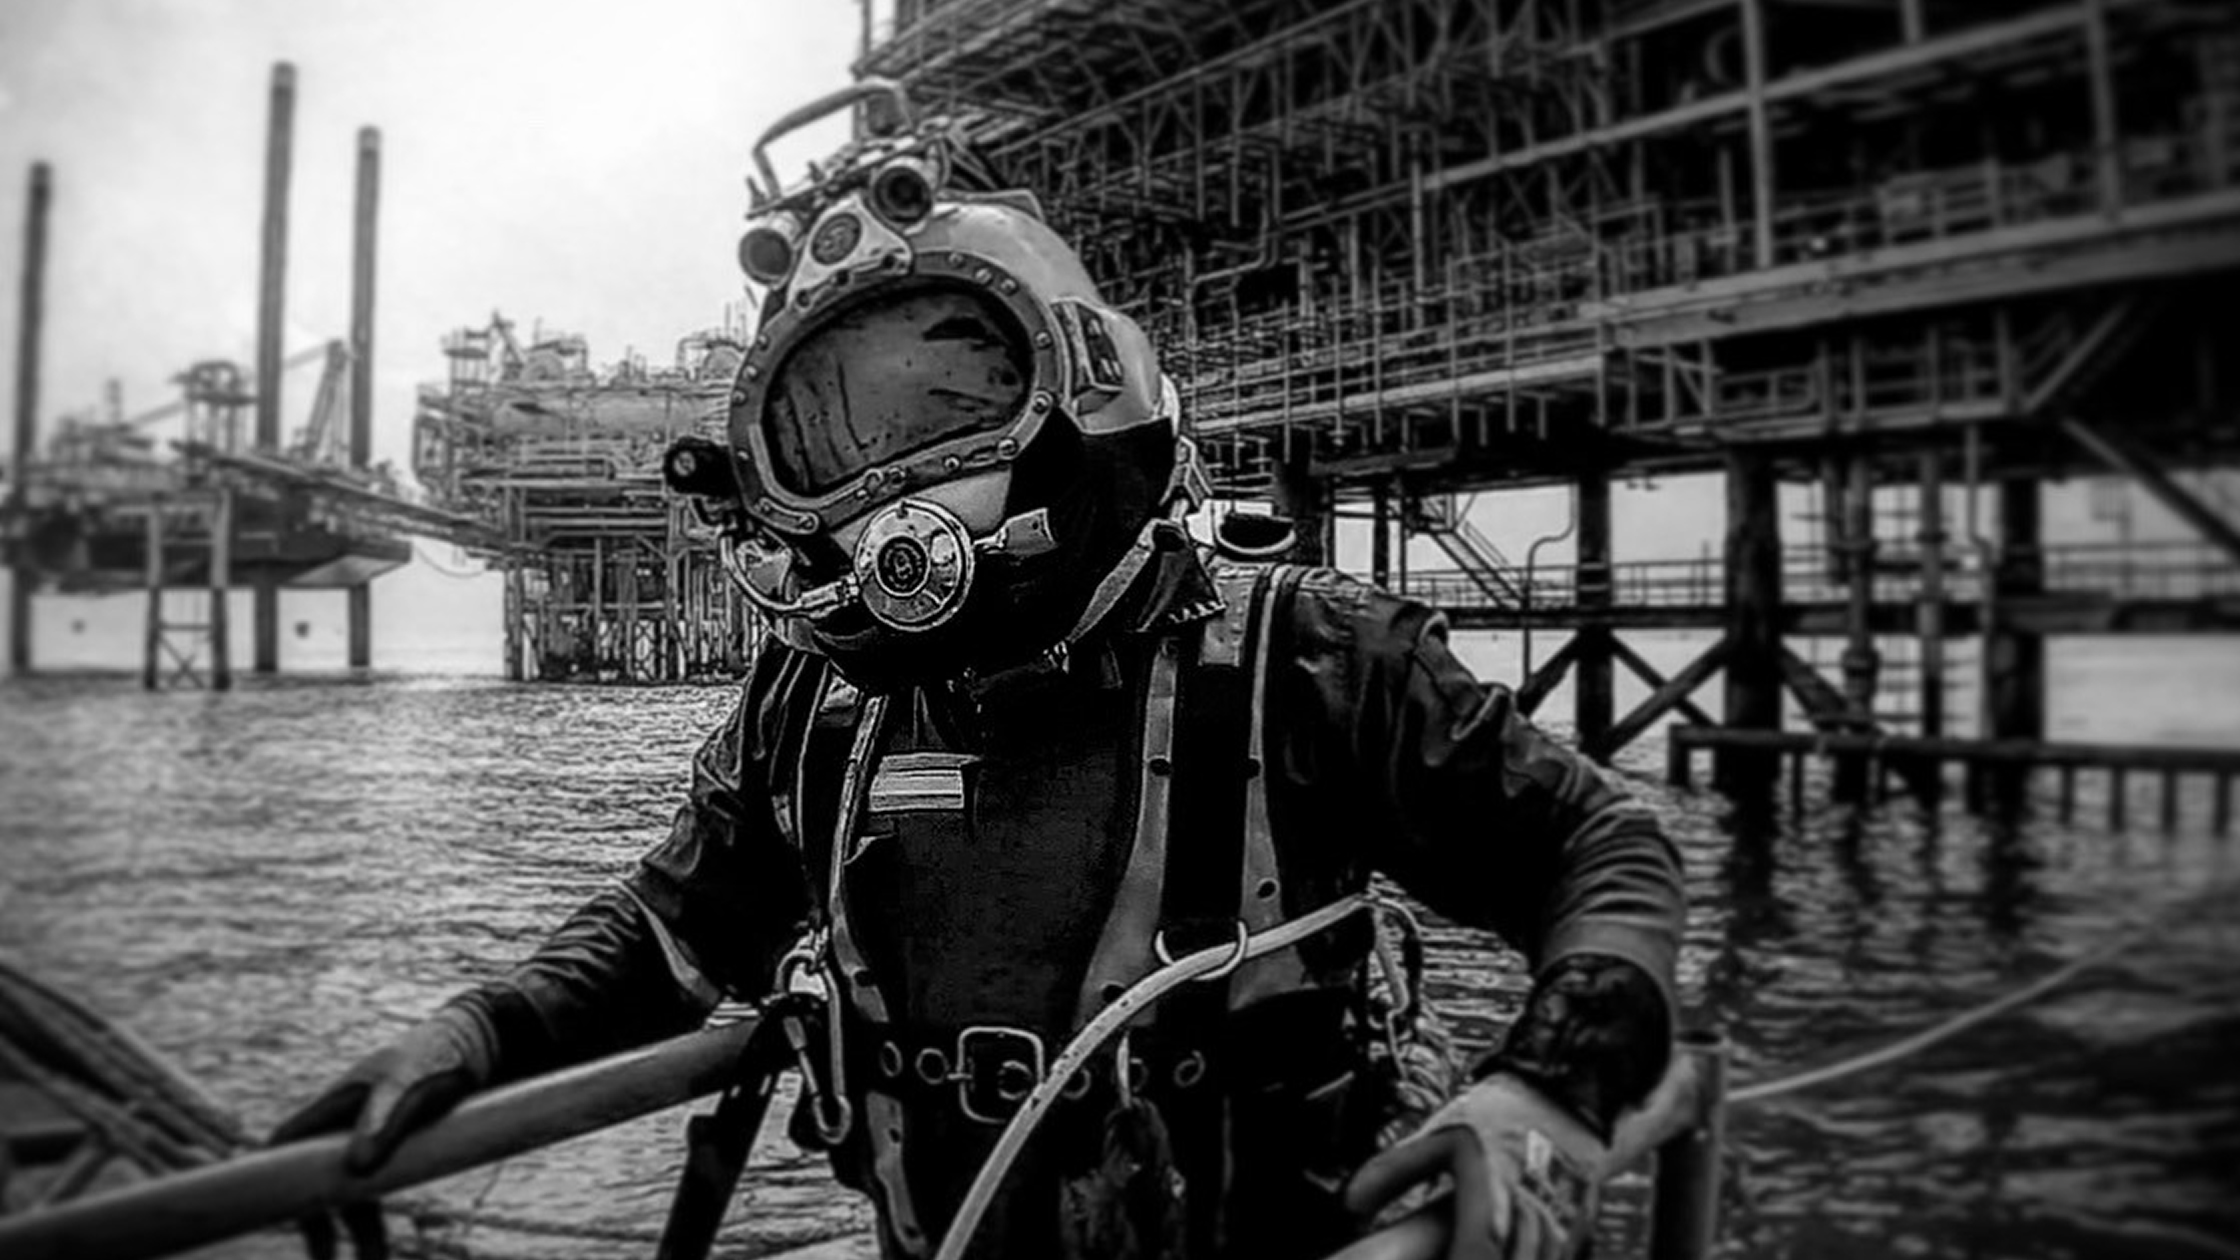 Divers Suited up in the sea near oil platforms